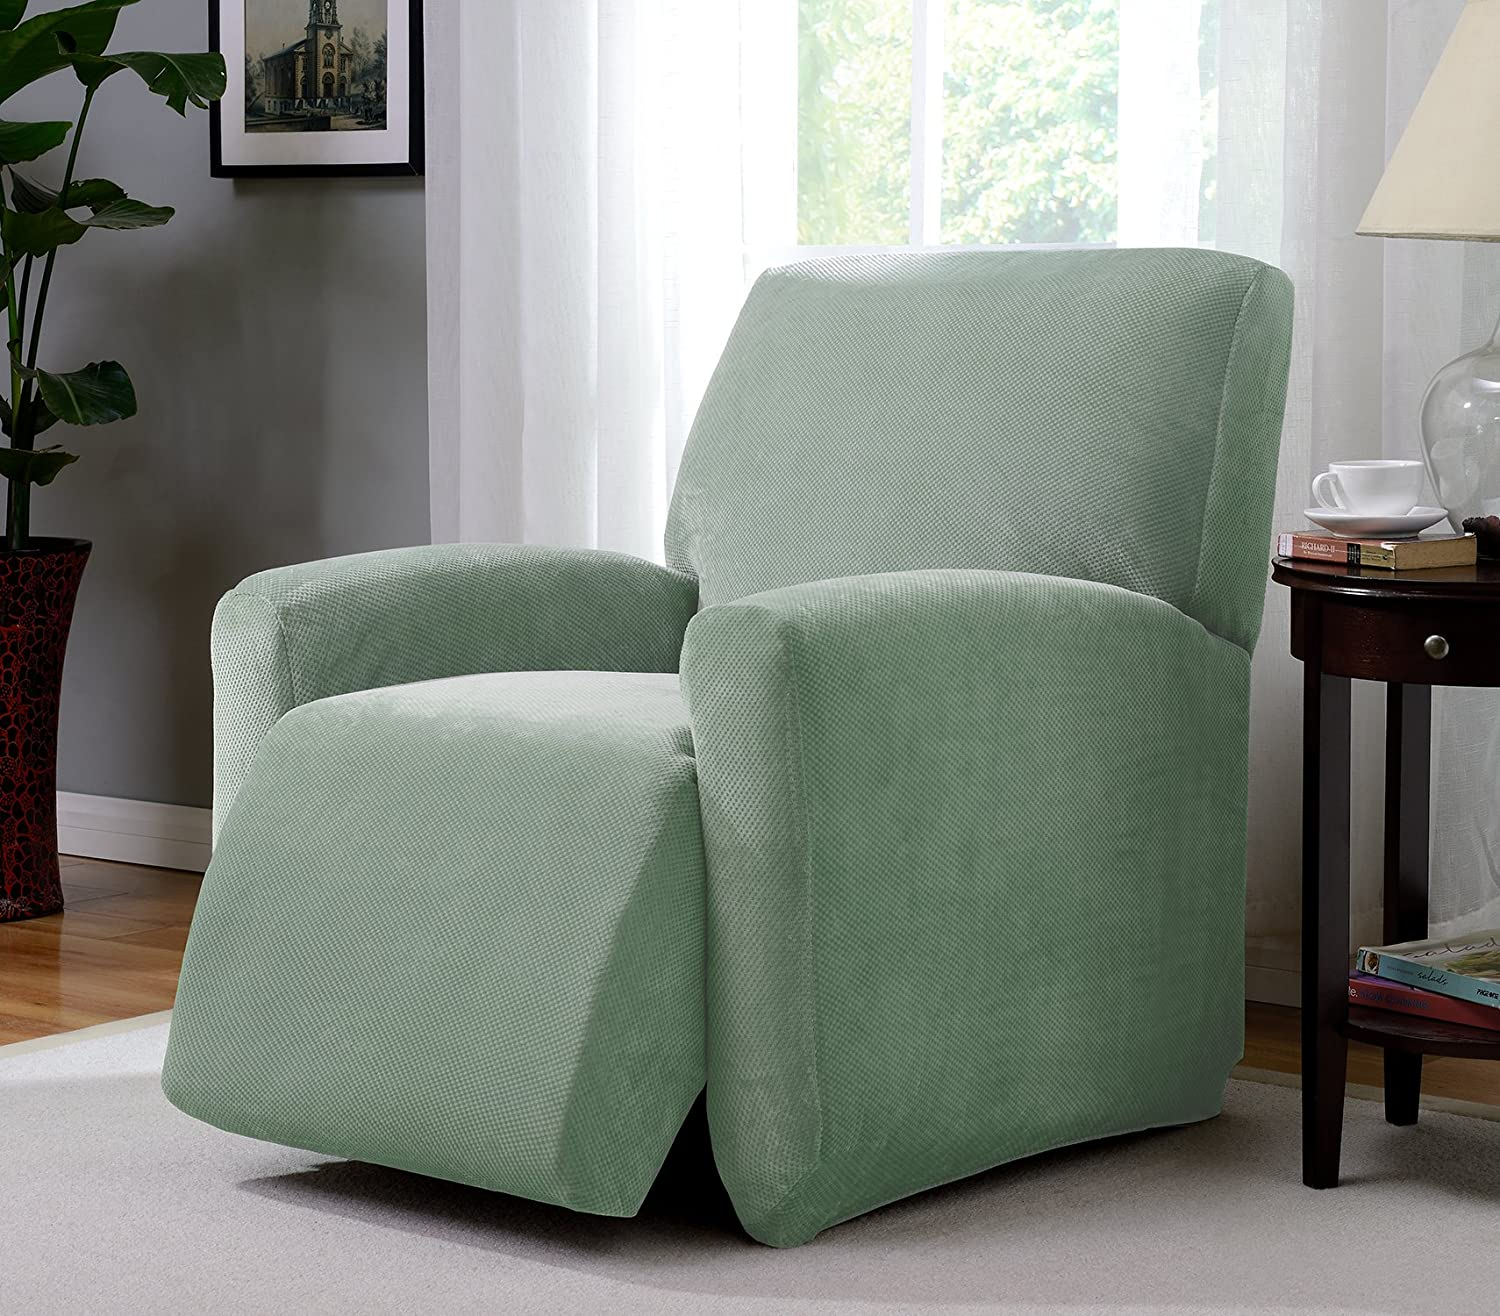 Madison PIQ-LGRECL-SE Stretch Pique Large Recliner Slipcover Stretch Pique Seaglass,Large Recliner Madison Industries